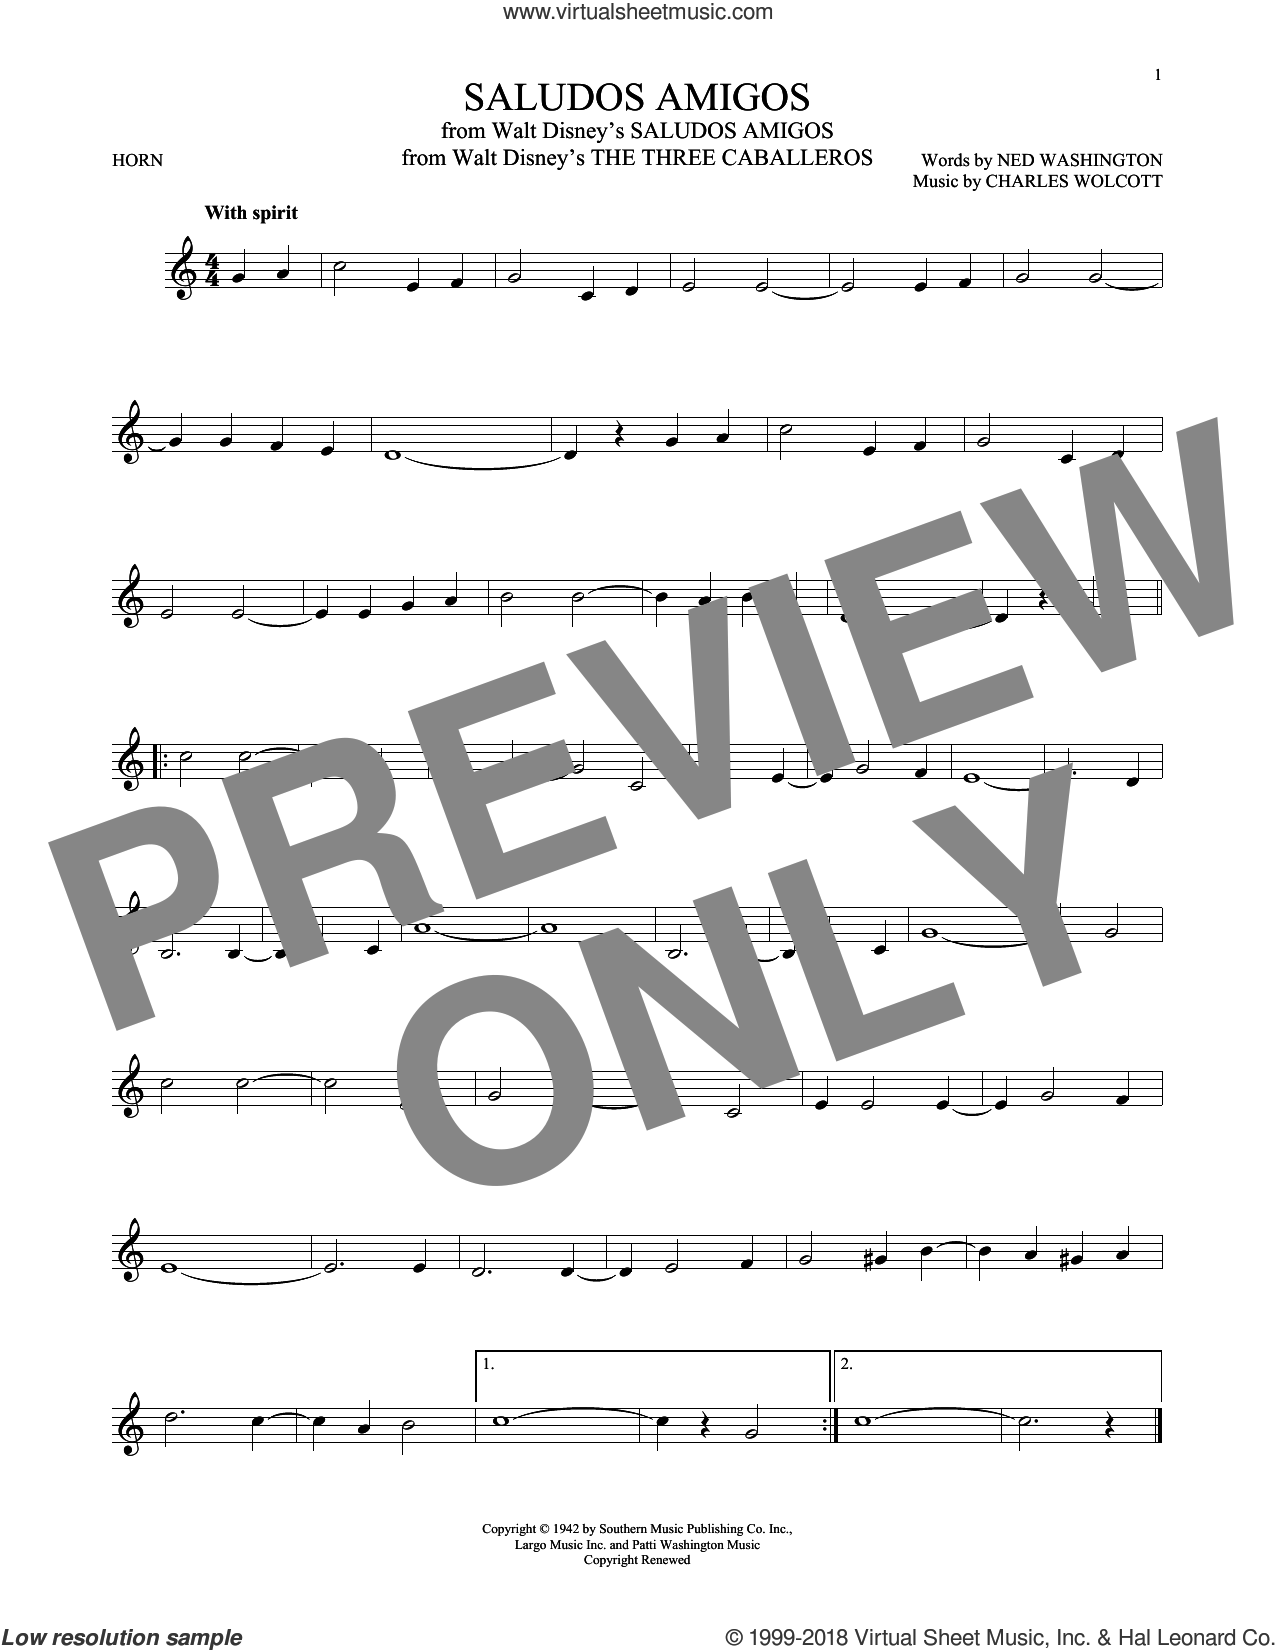 Saludos Amigos sheet music for horn solo by Ned Washington and Charles Wolcott. Score Image Preview.